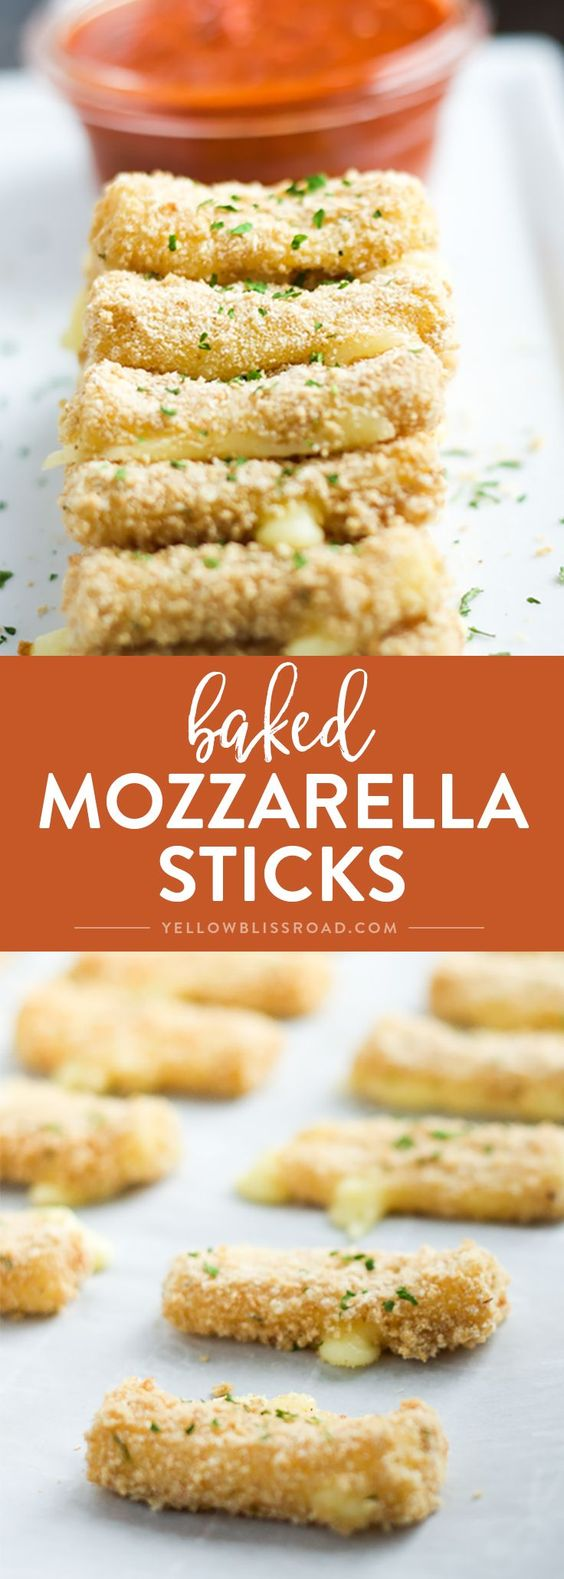 Baked Mozzarella Sticks are the perfect snack or appetizer for Game Day.